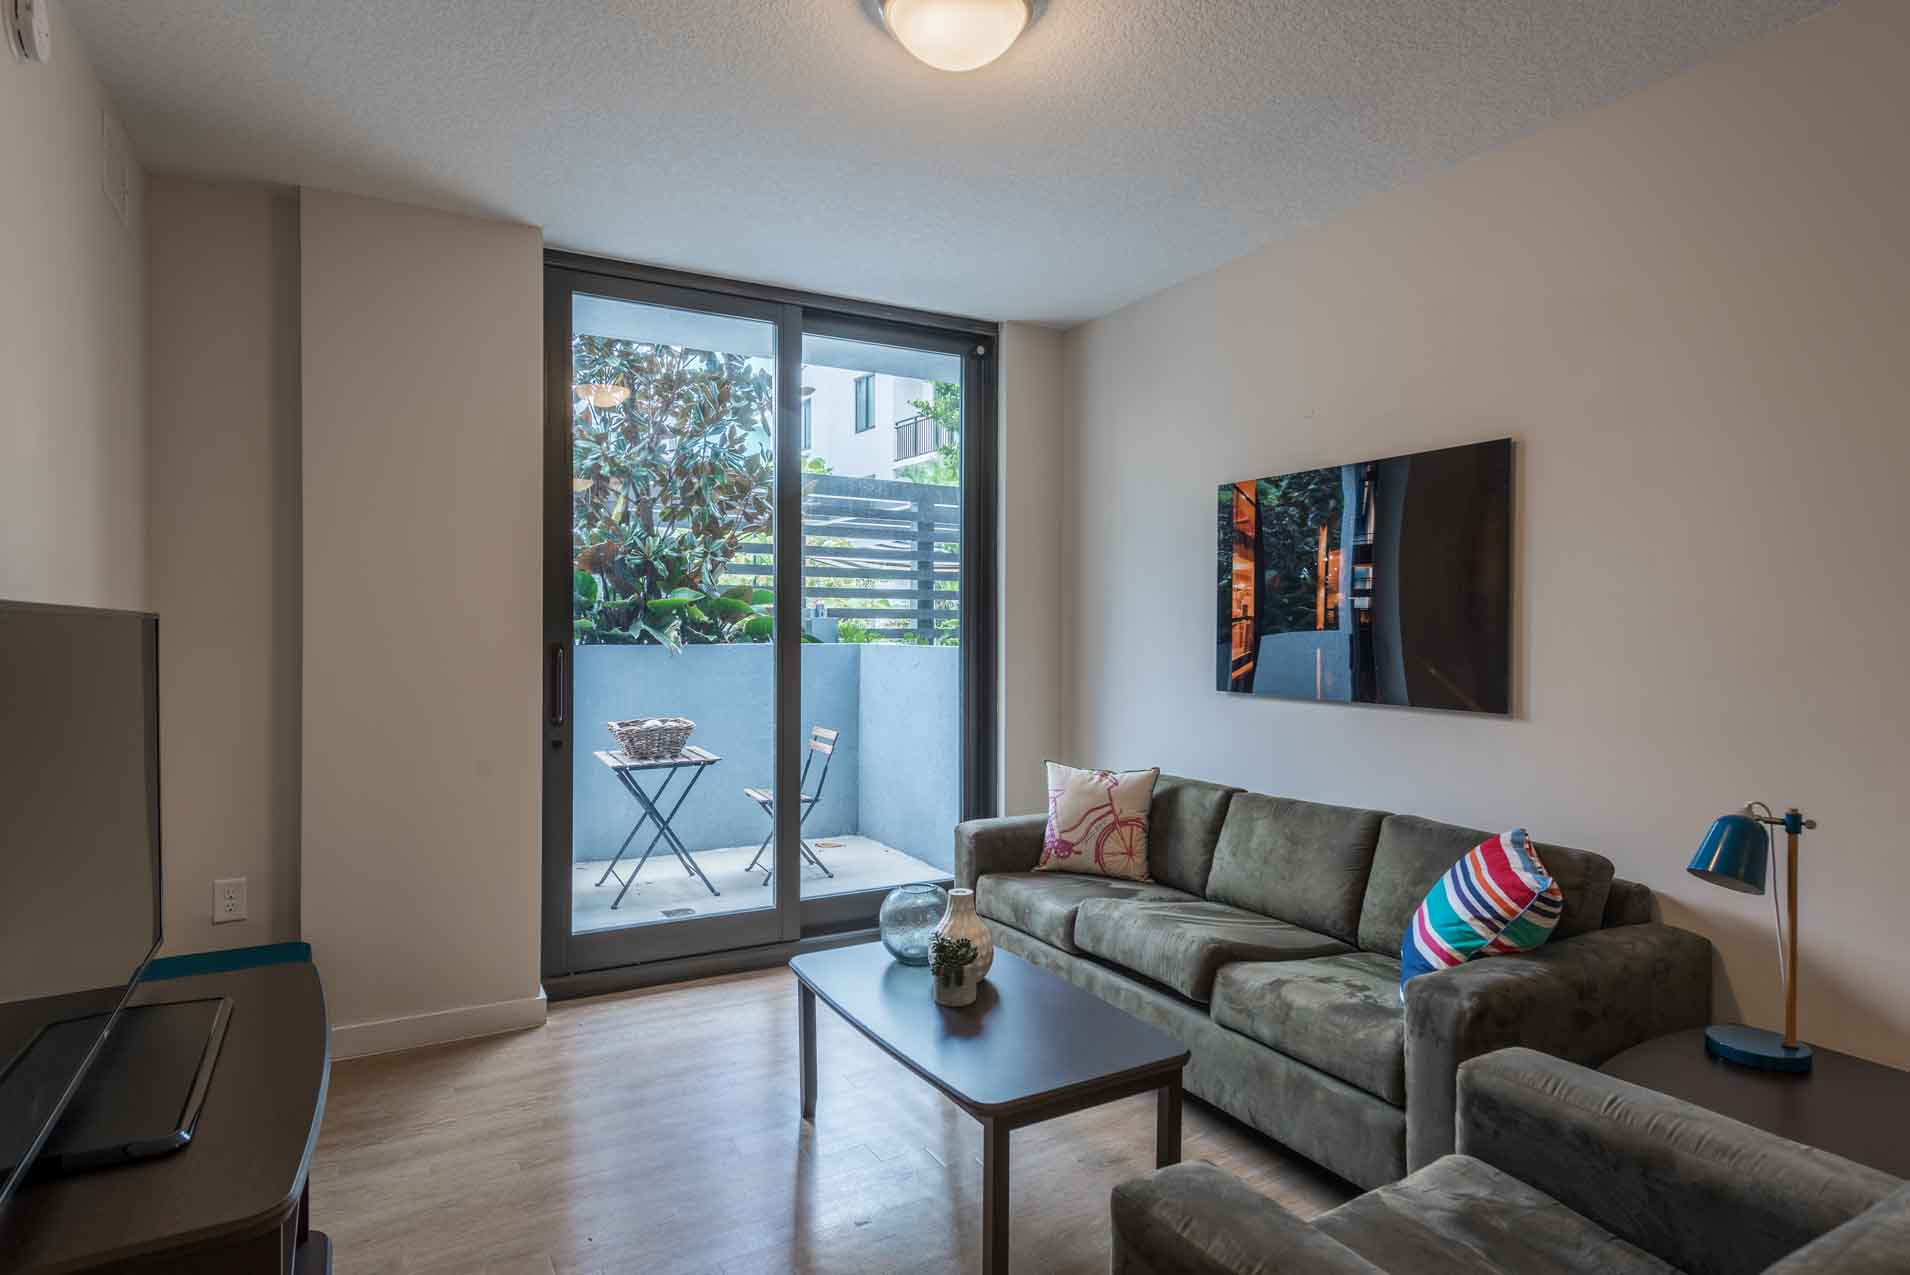 4th-Street-Commons-Miami-Living-Room-Unilodgers